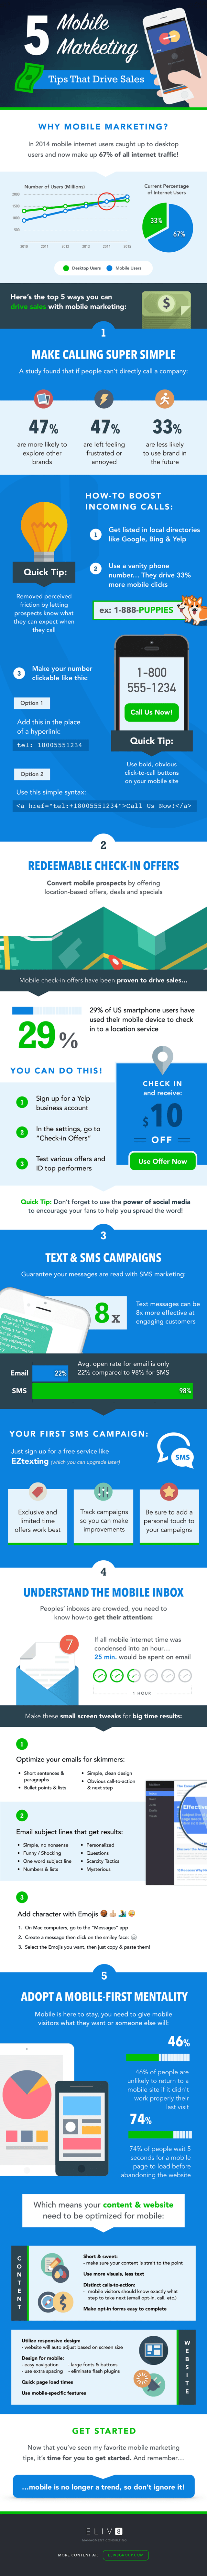 Mobile Marketing Tips that Drive Sales